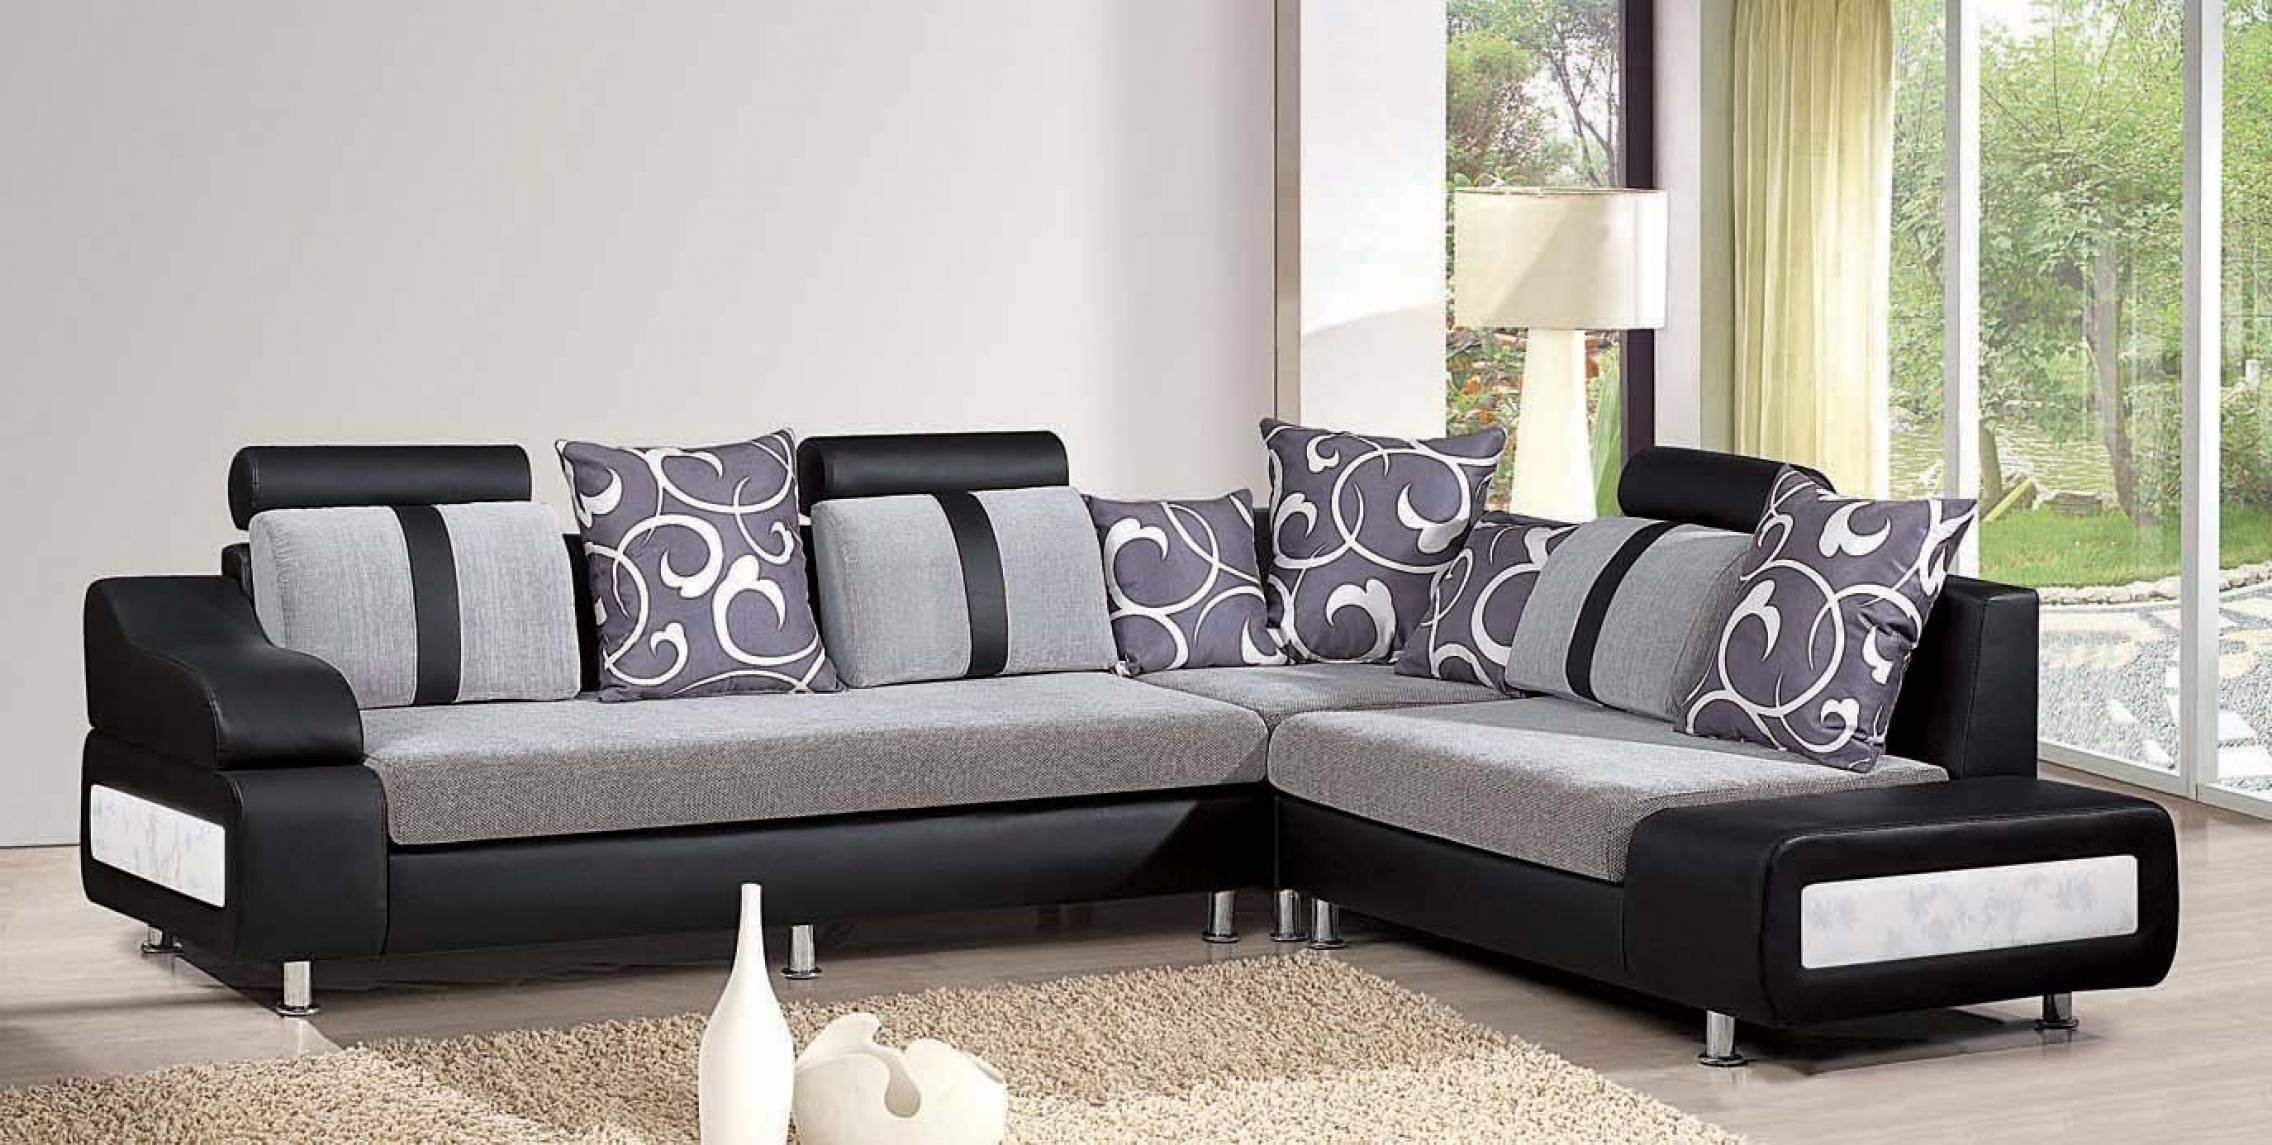 Favorite Sofas And Chairs Regarding Sofas And Chairs (View 5 of 15)